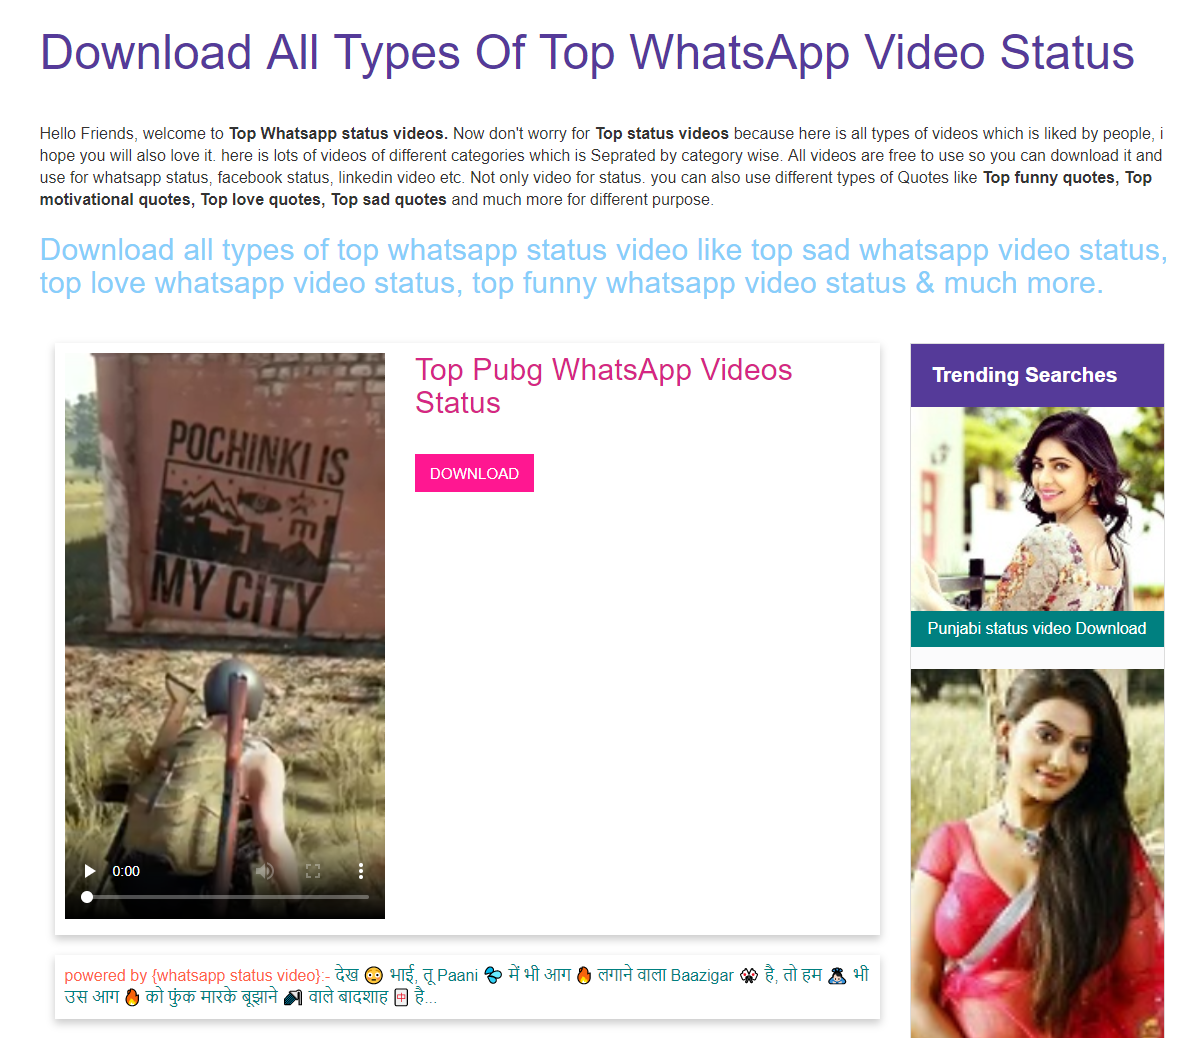 Download All Types Of Top WhatsApp Video Status